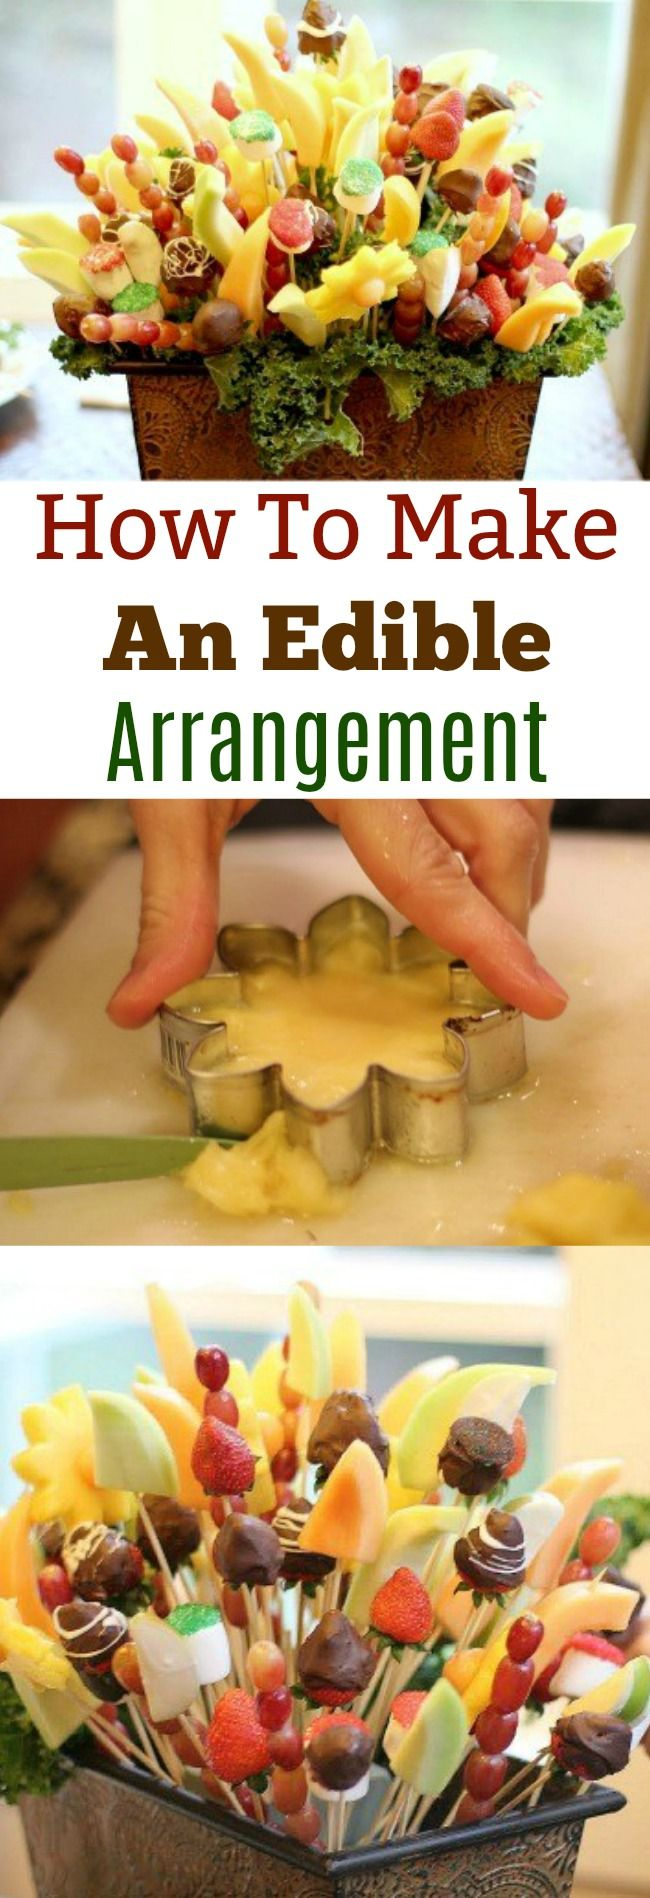 I made this edible arrangement 2 years ago and brought it to my parents home for Christmas. I decided to re-post it today because edible arrangements are simple to make and are so much nicer than flowers in my opinion. Plus, you'll look like a freakin' rockstar when you walk in to your parents house with an …